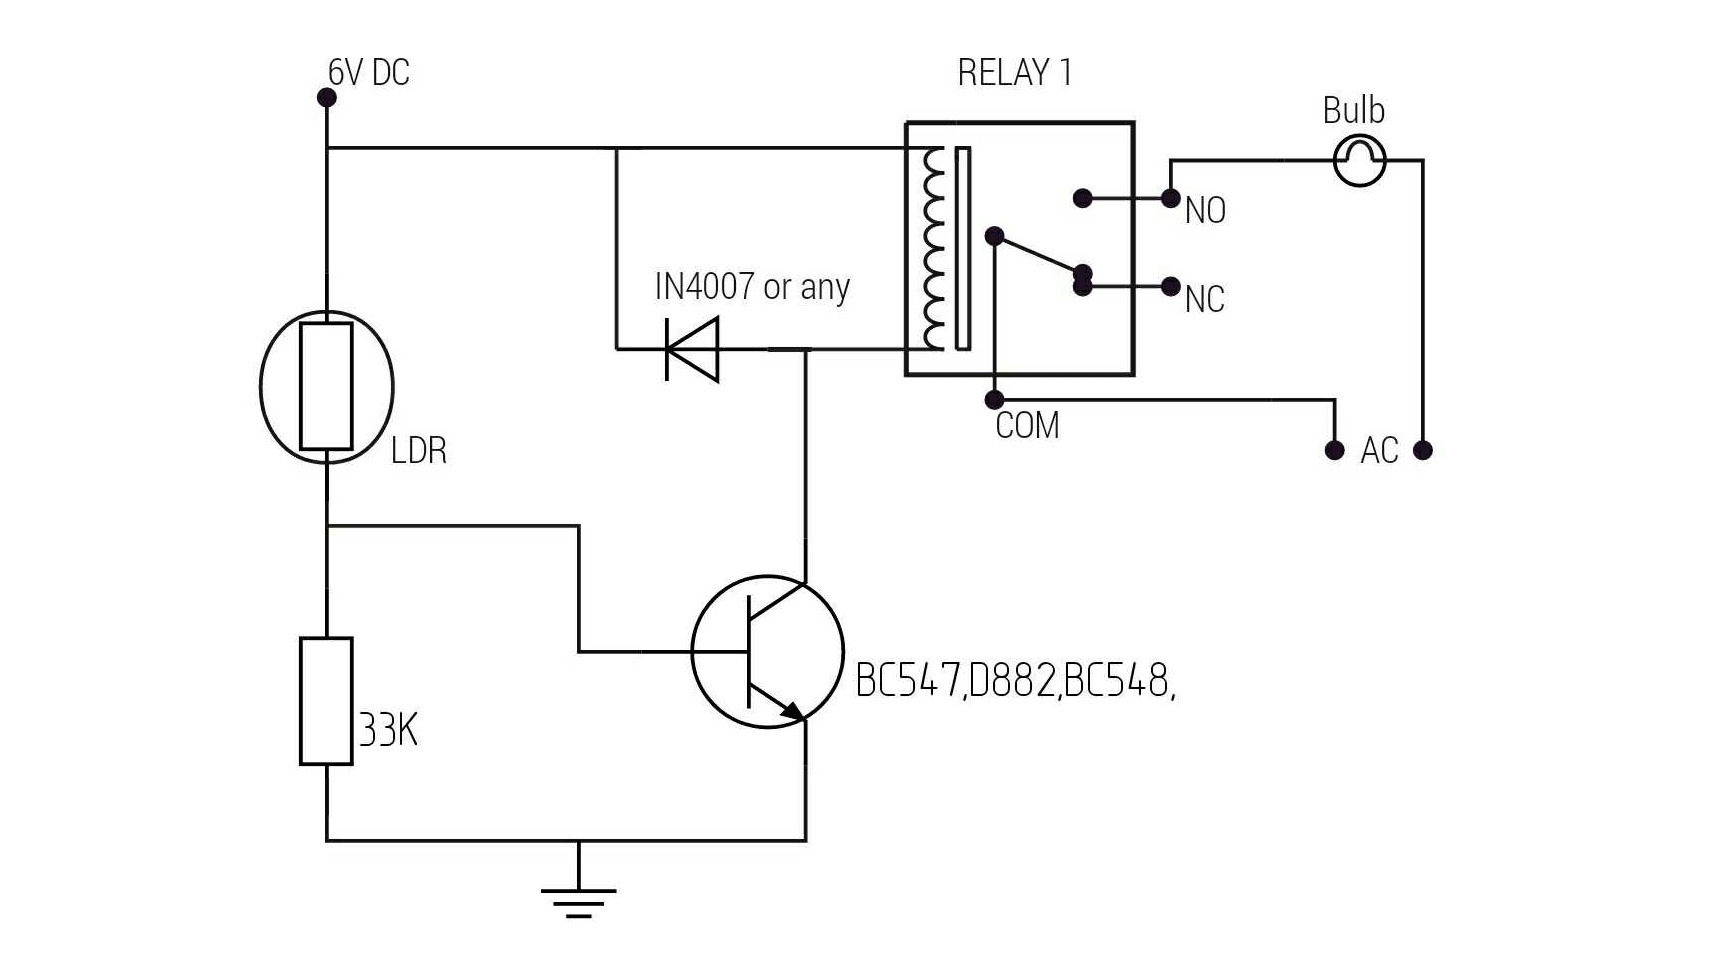 Automatic light with ldr circuit diagram. – WELCOME